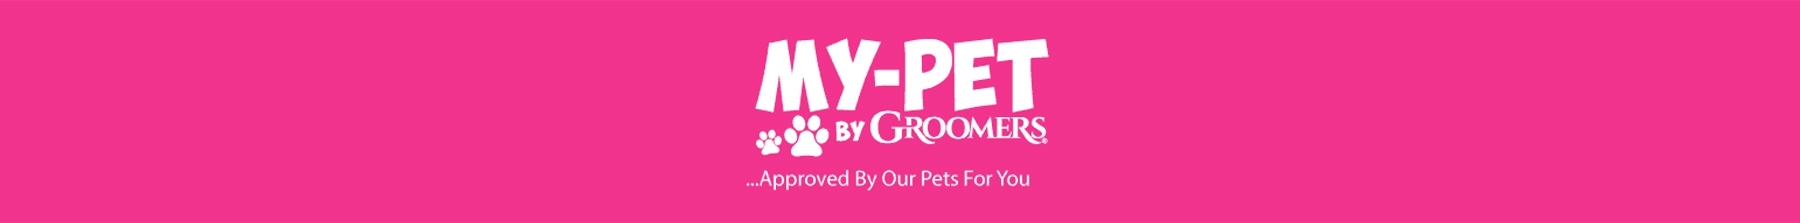 My-Pet by Groomers